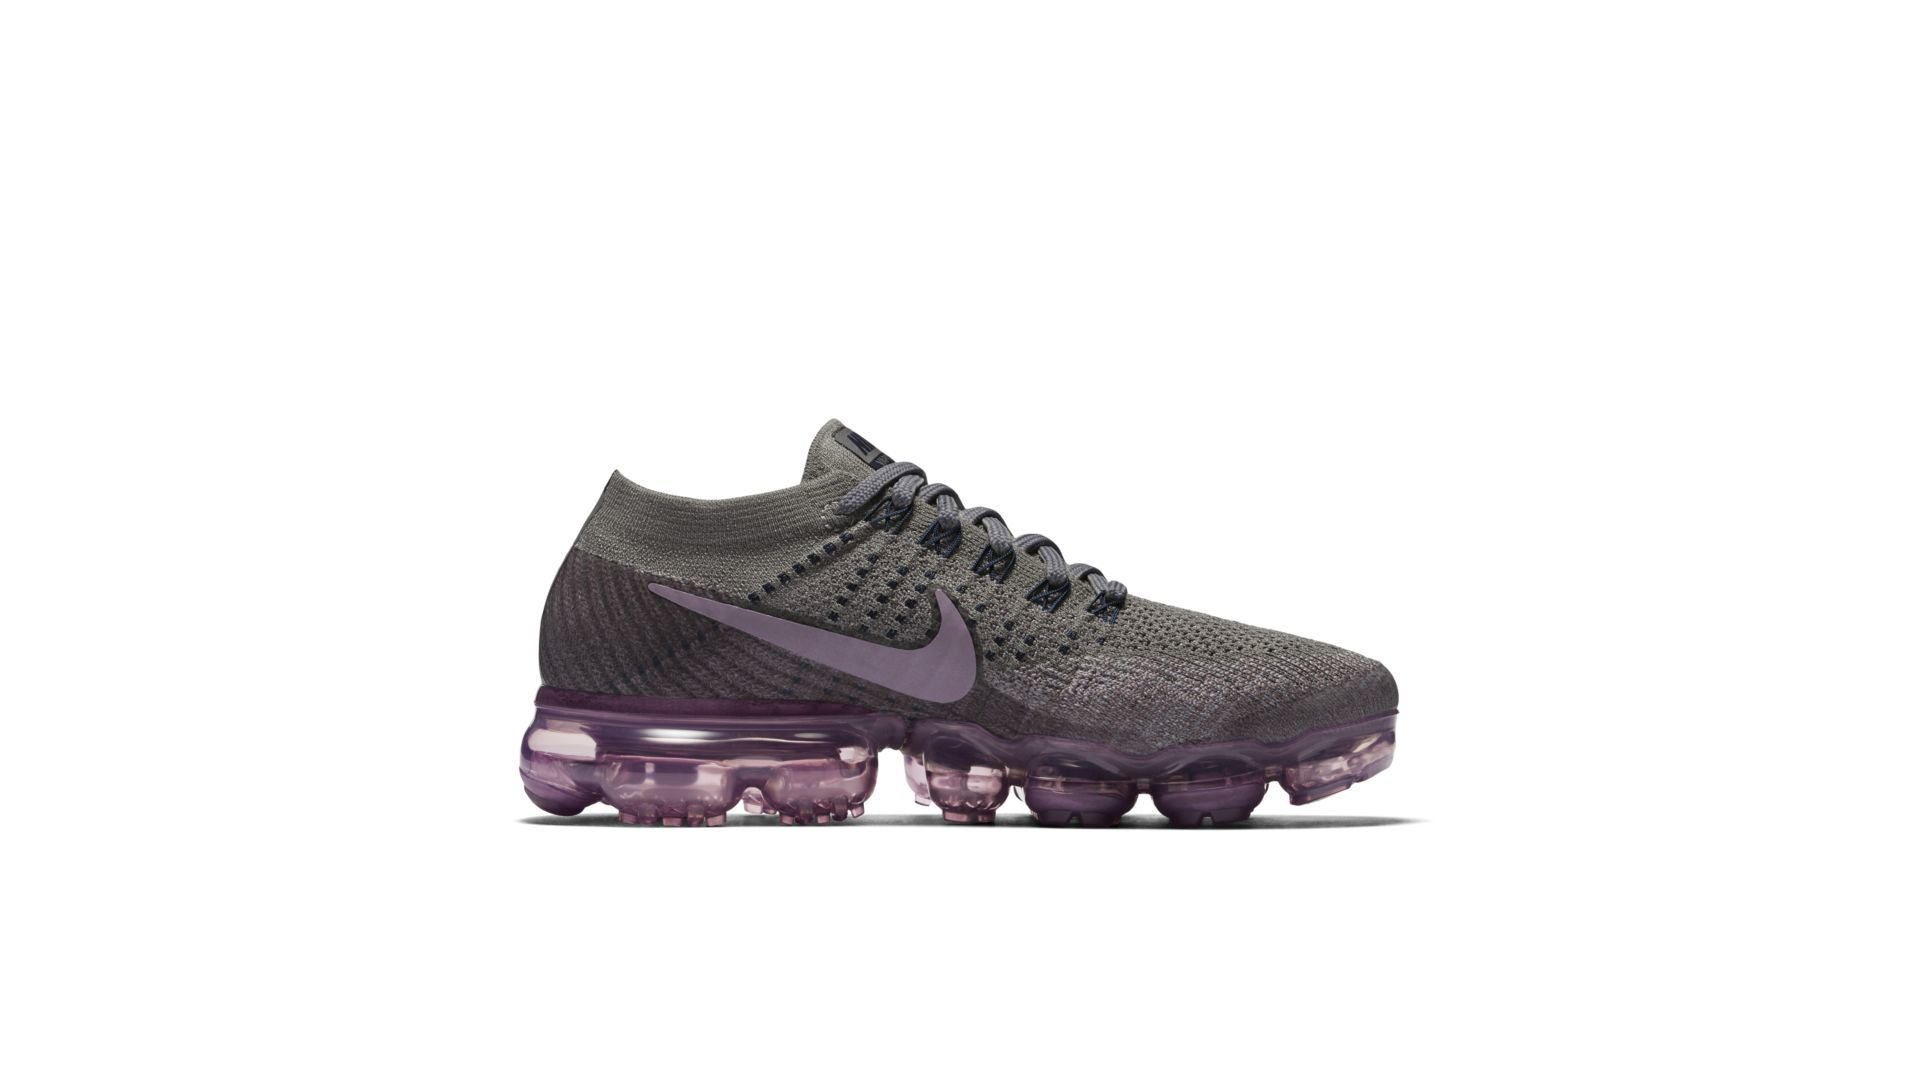 Nike Air Vapormax Tea Berry (899472-400)